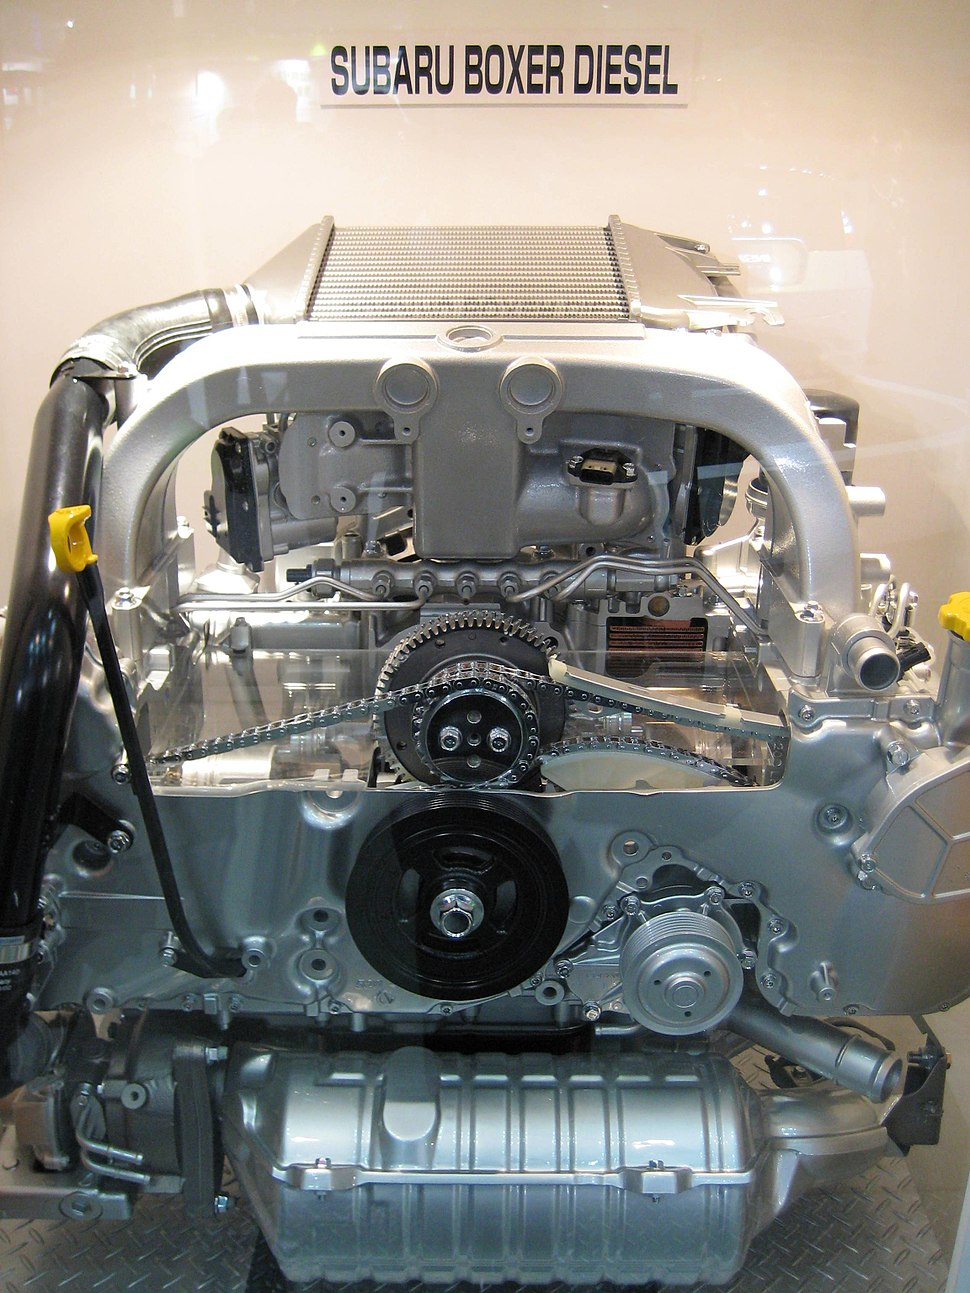 medium resolution of subaru boxer diesel engine for 2008 legacy in eco products 2008